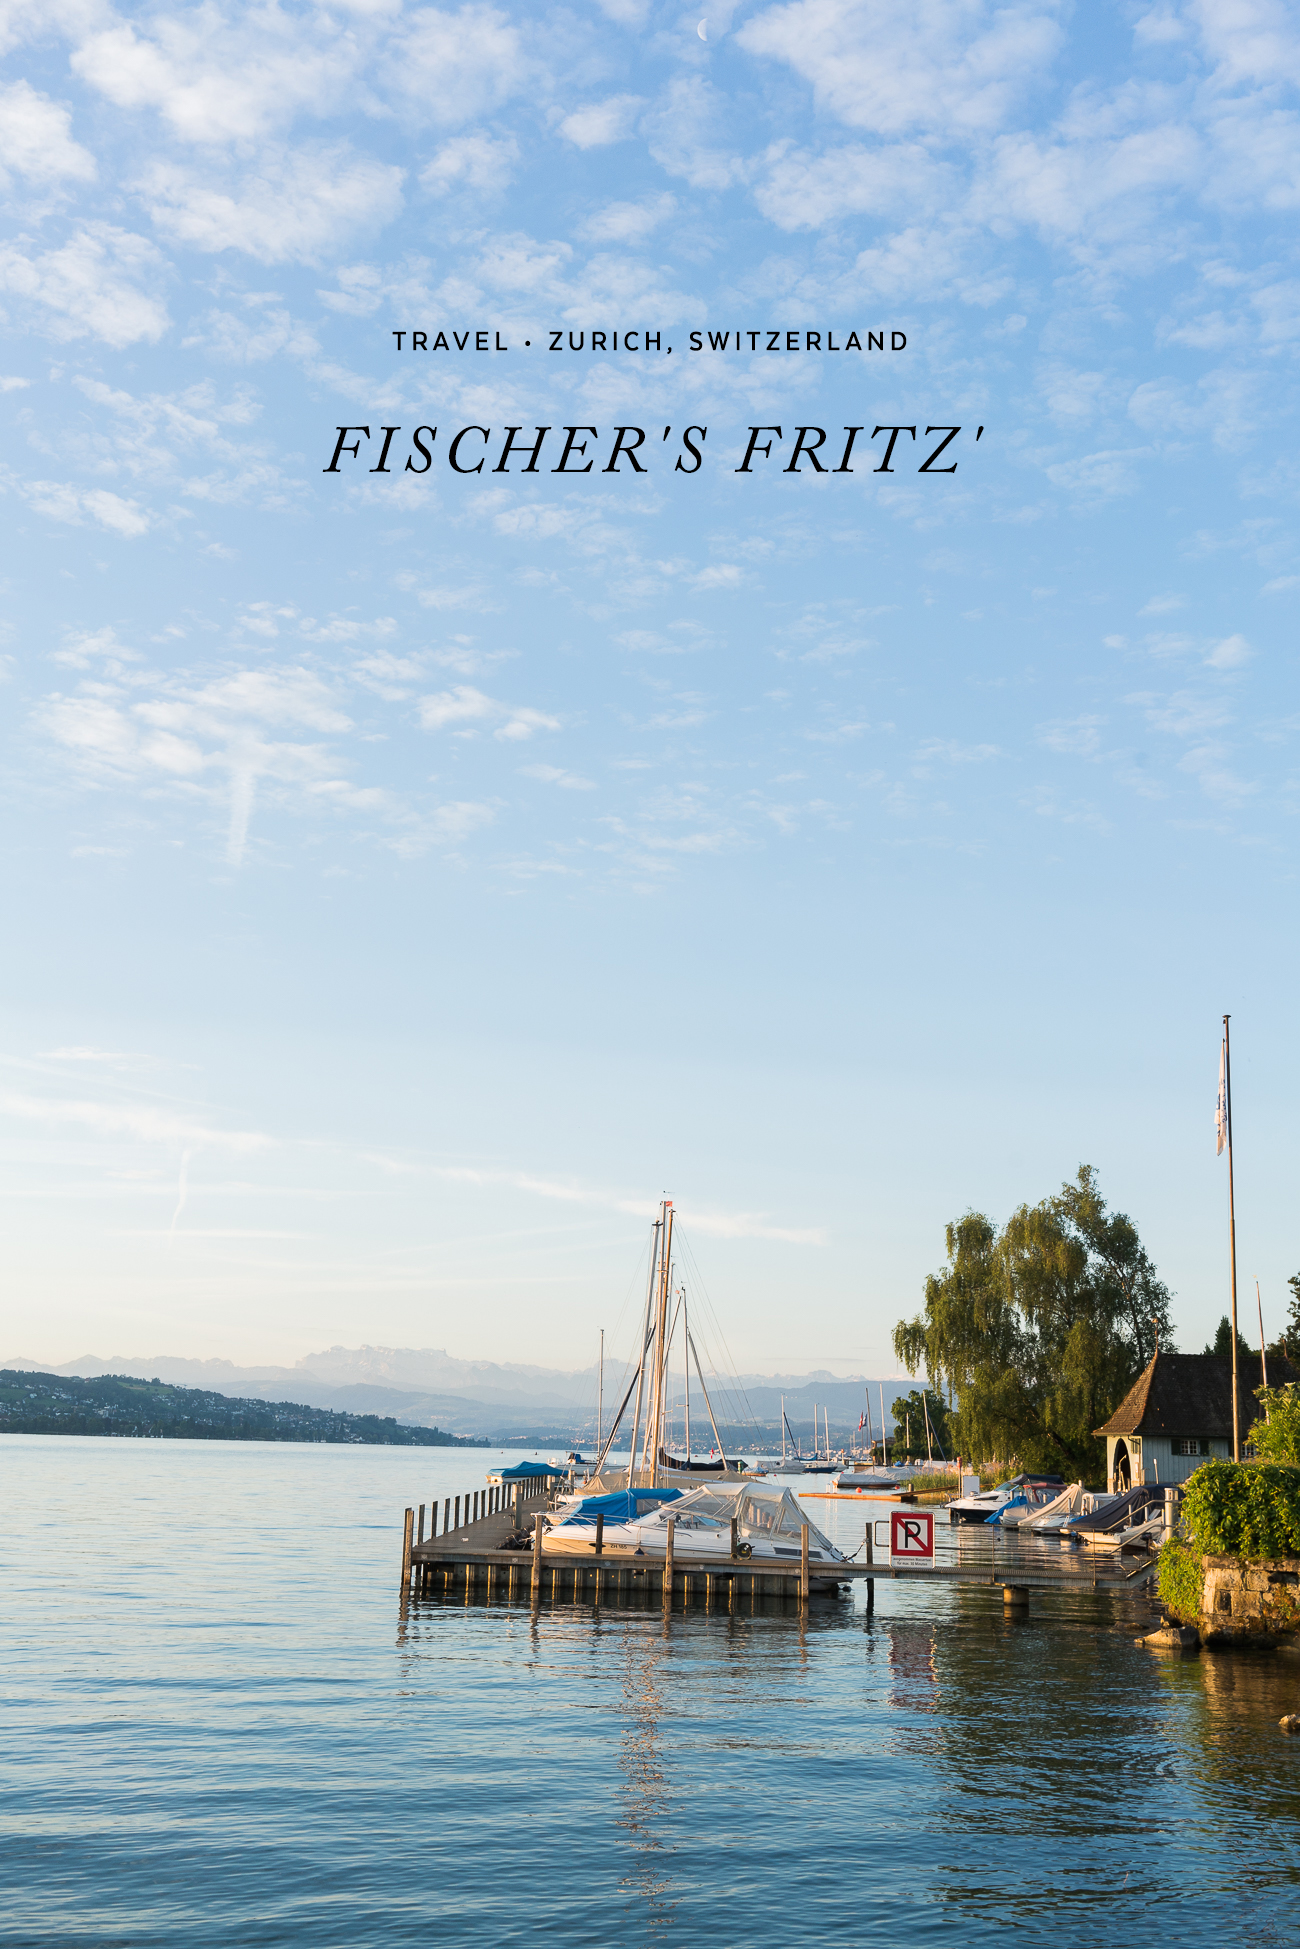 Visiting Fischer's Fritz' - Zurich, Switzerland /